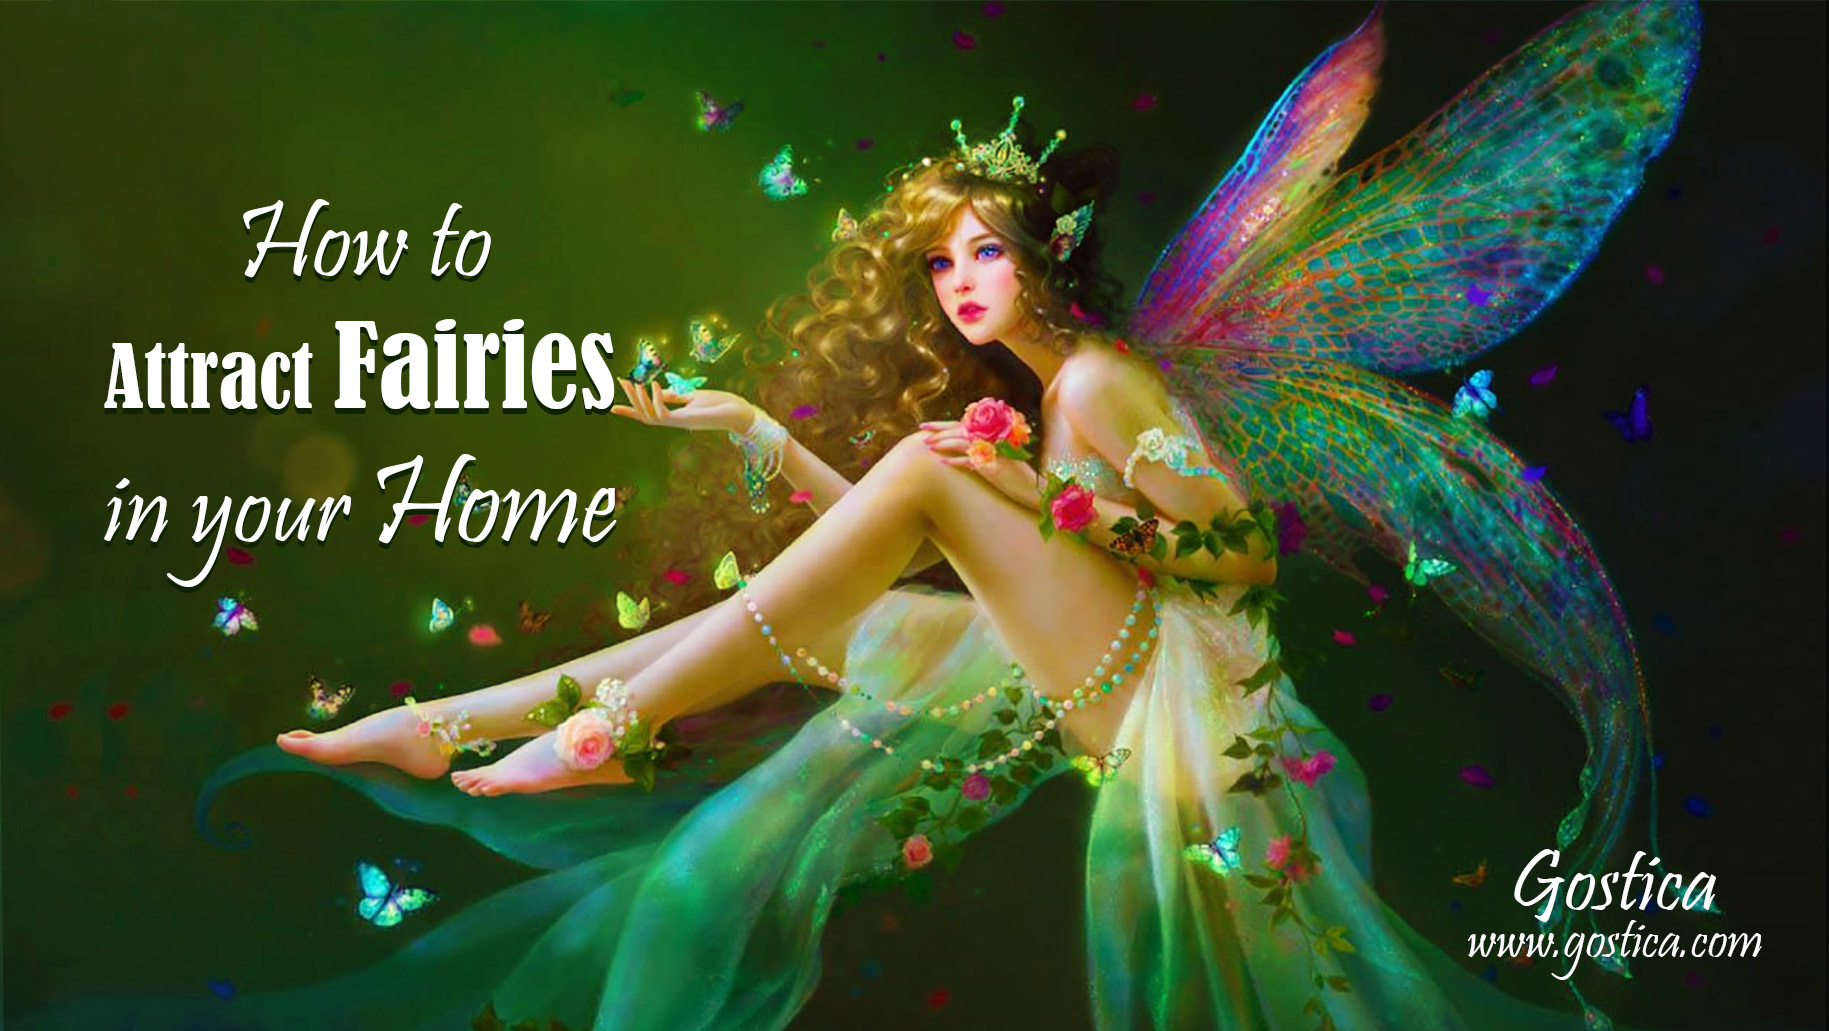 How-to-Attract-Fairies-in-your-Home.jpg